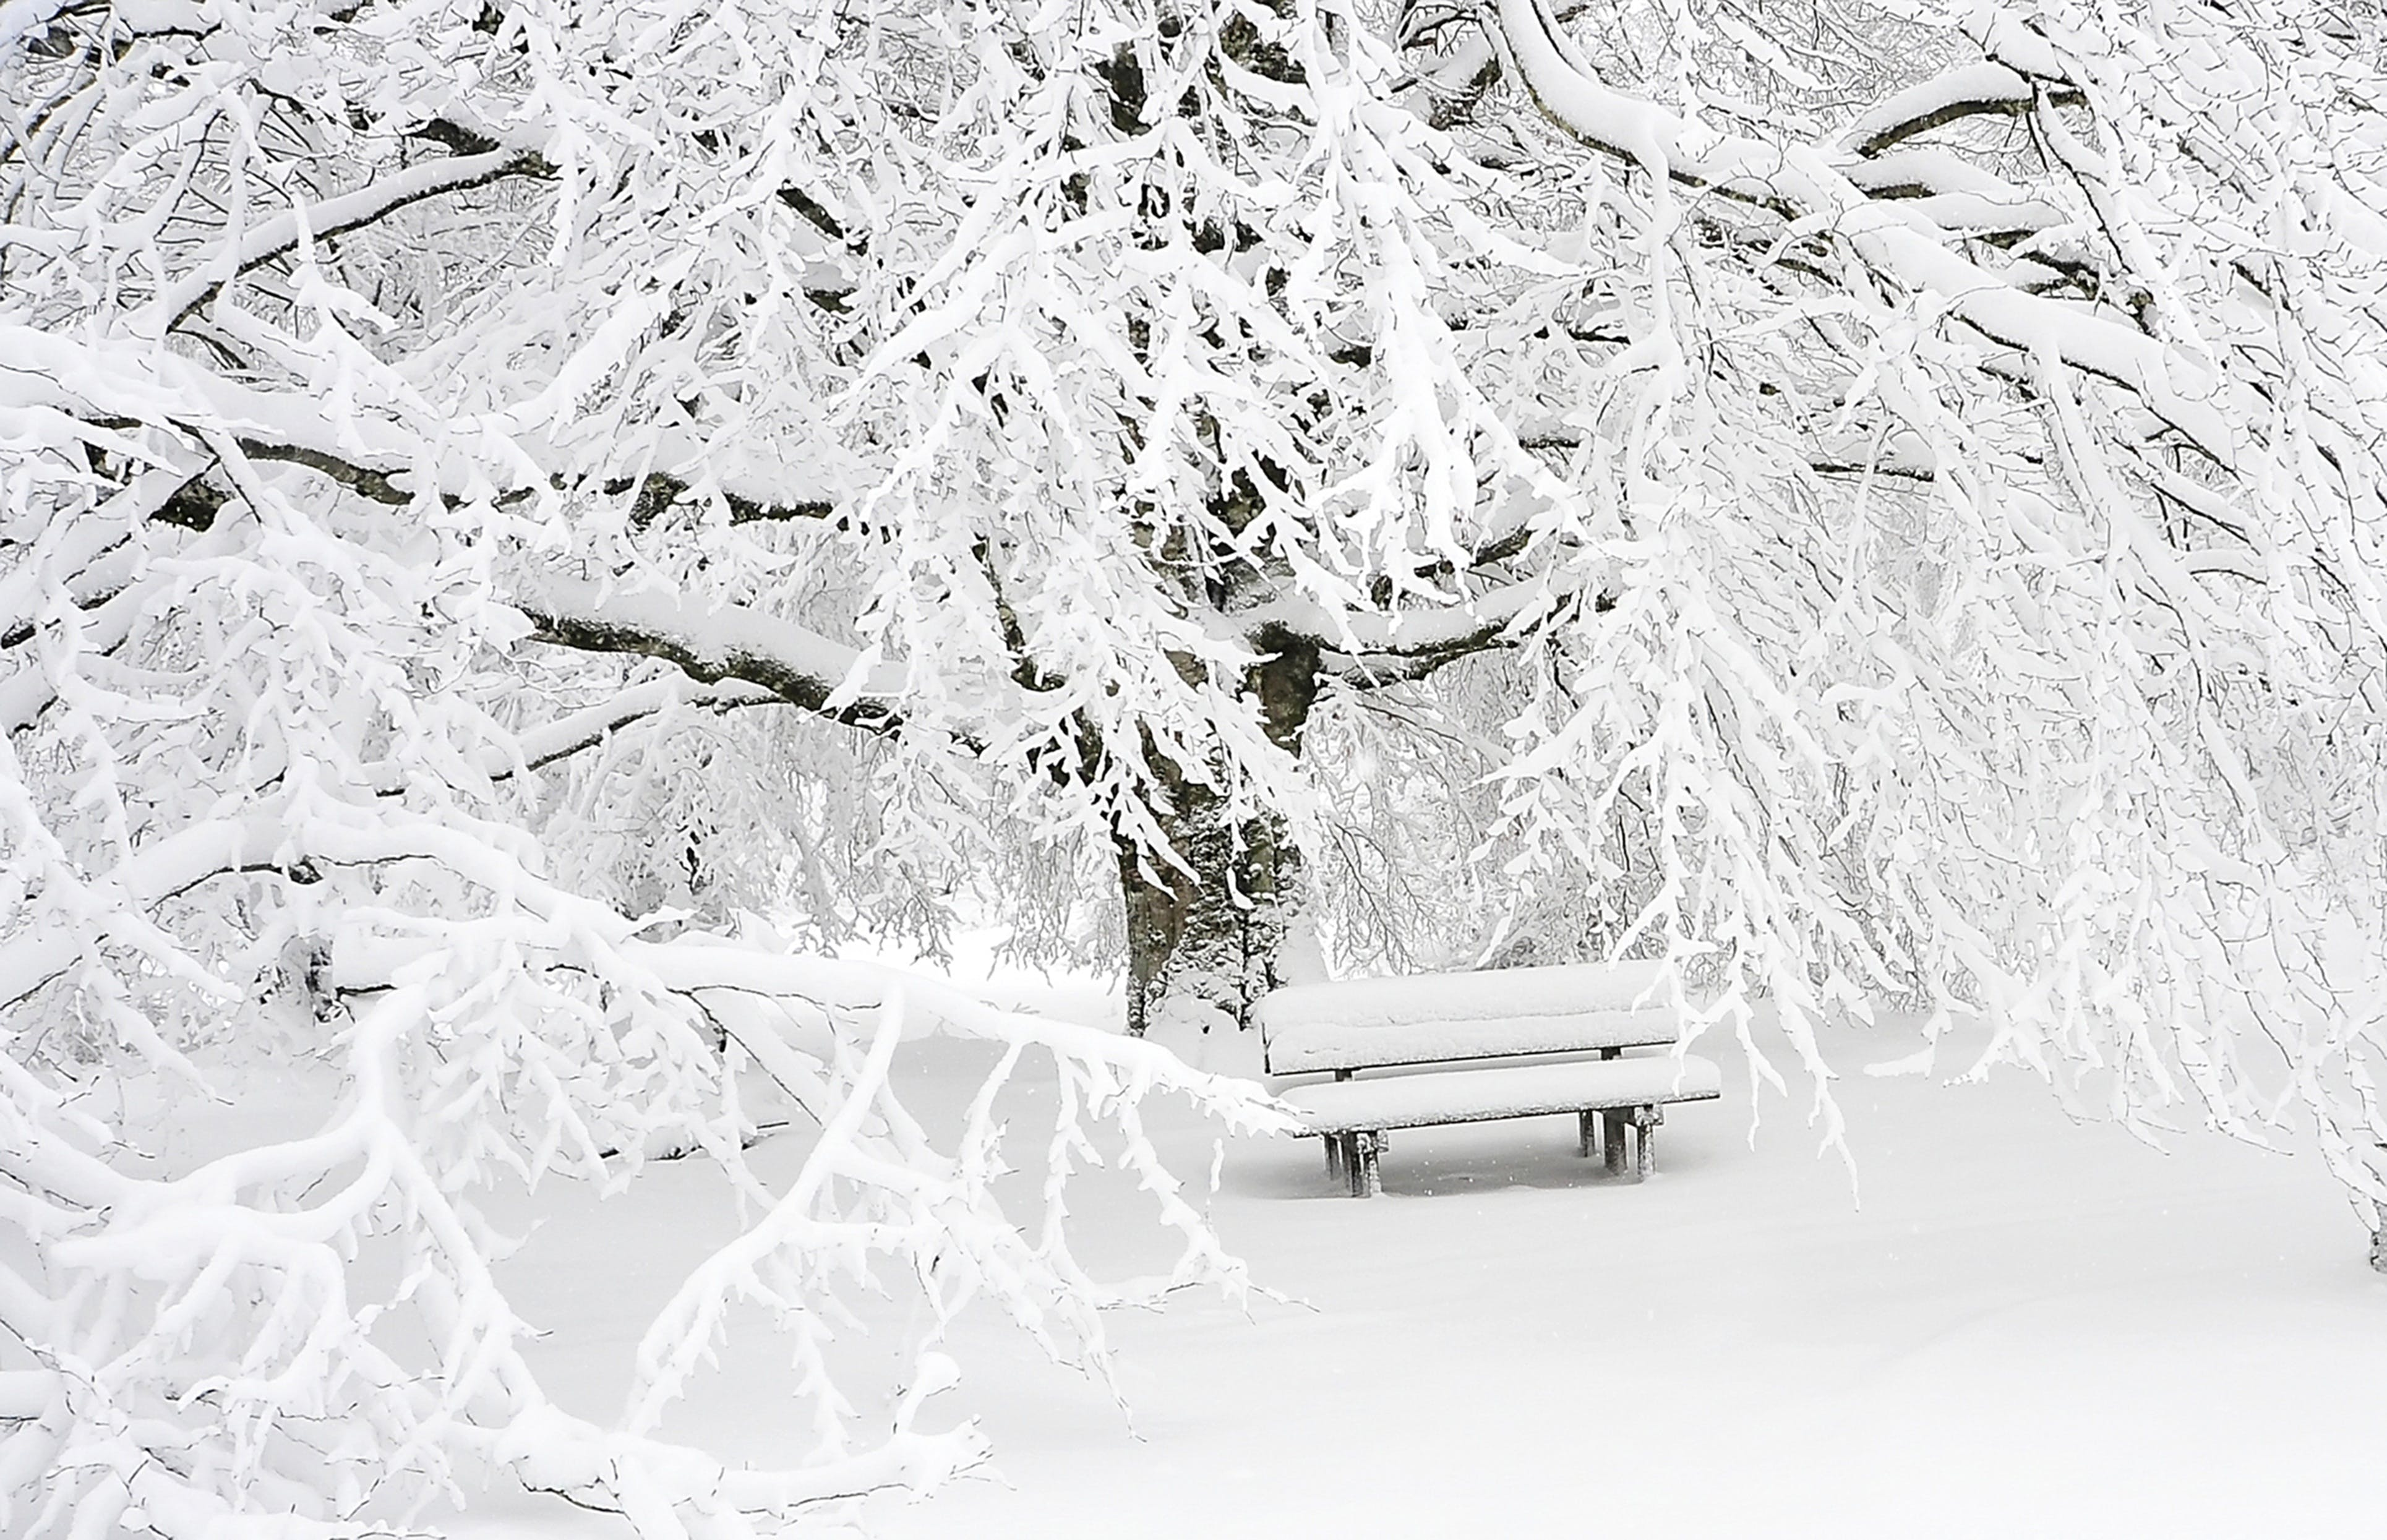 Snow Covered Bench Near Snow Covered Bare Tree